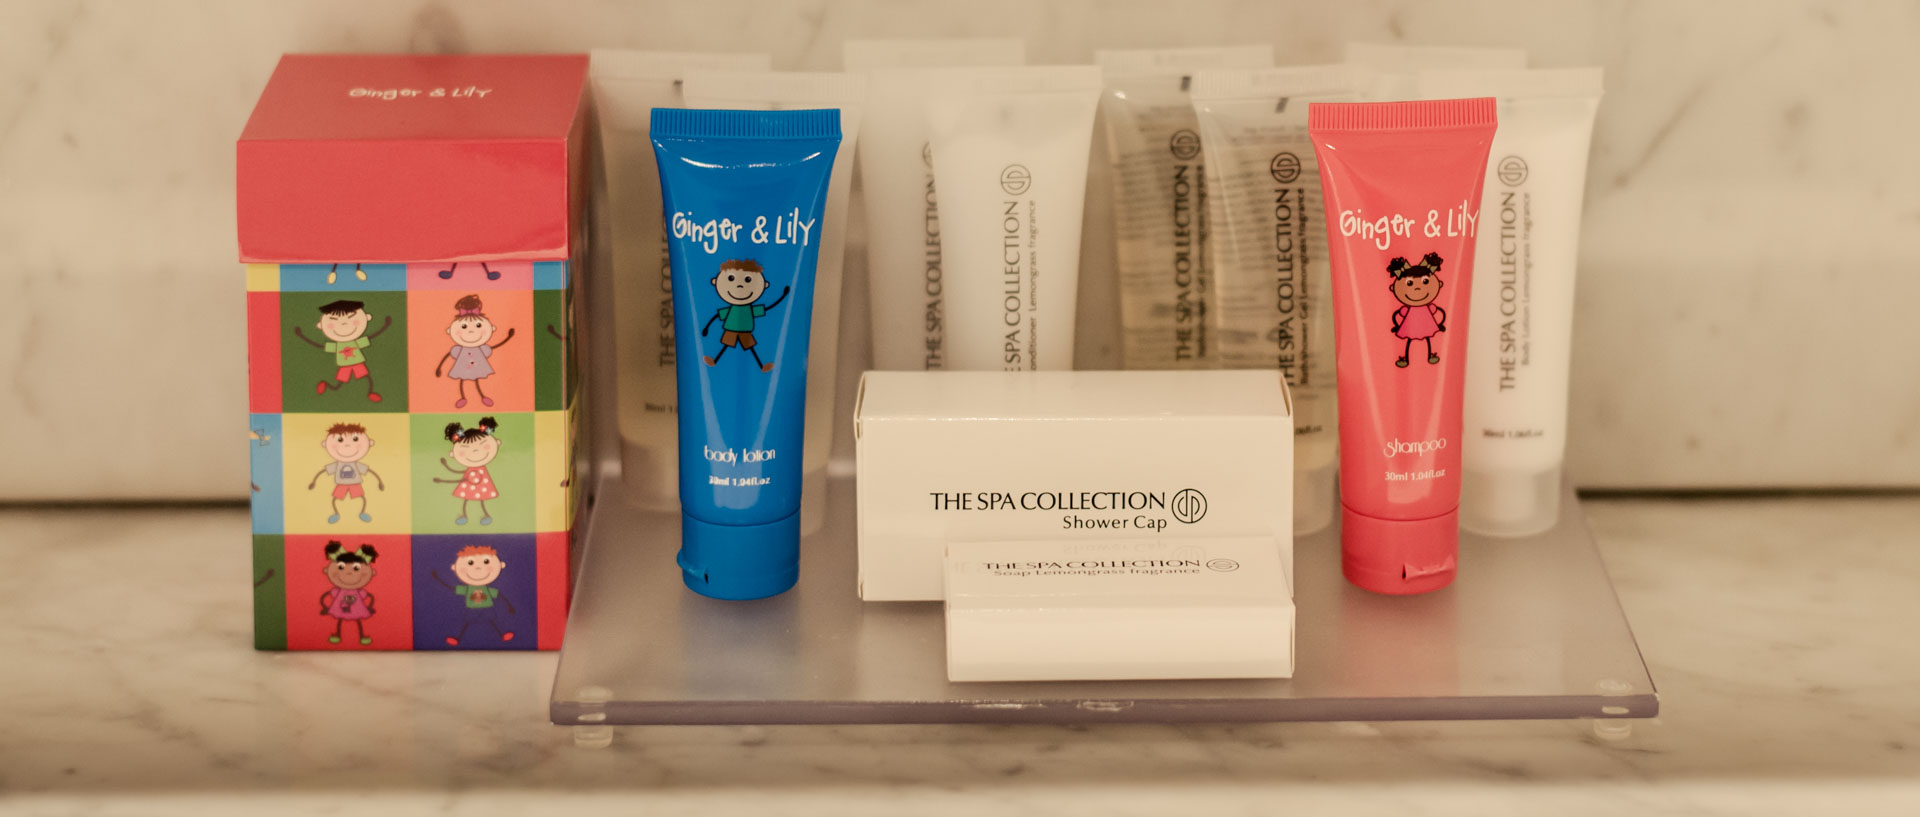 PREMIER_SUITES_Dublin Sandyford toiletries